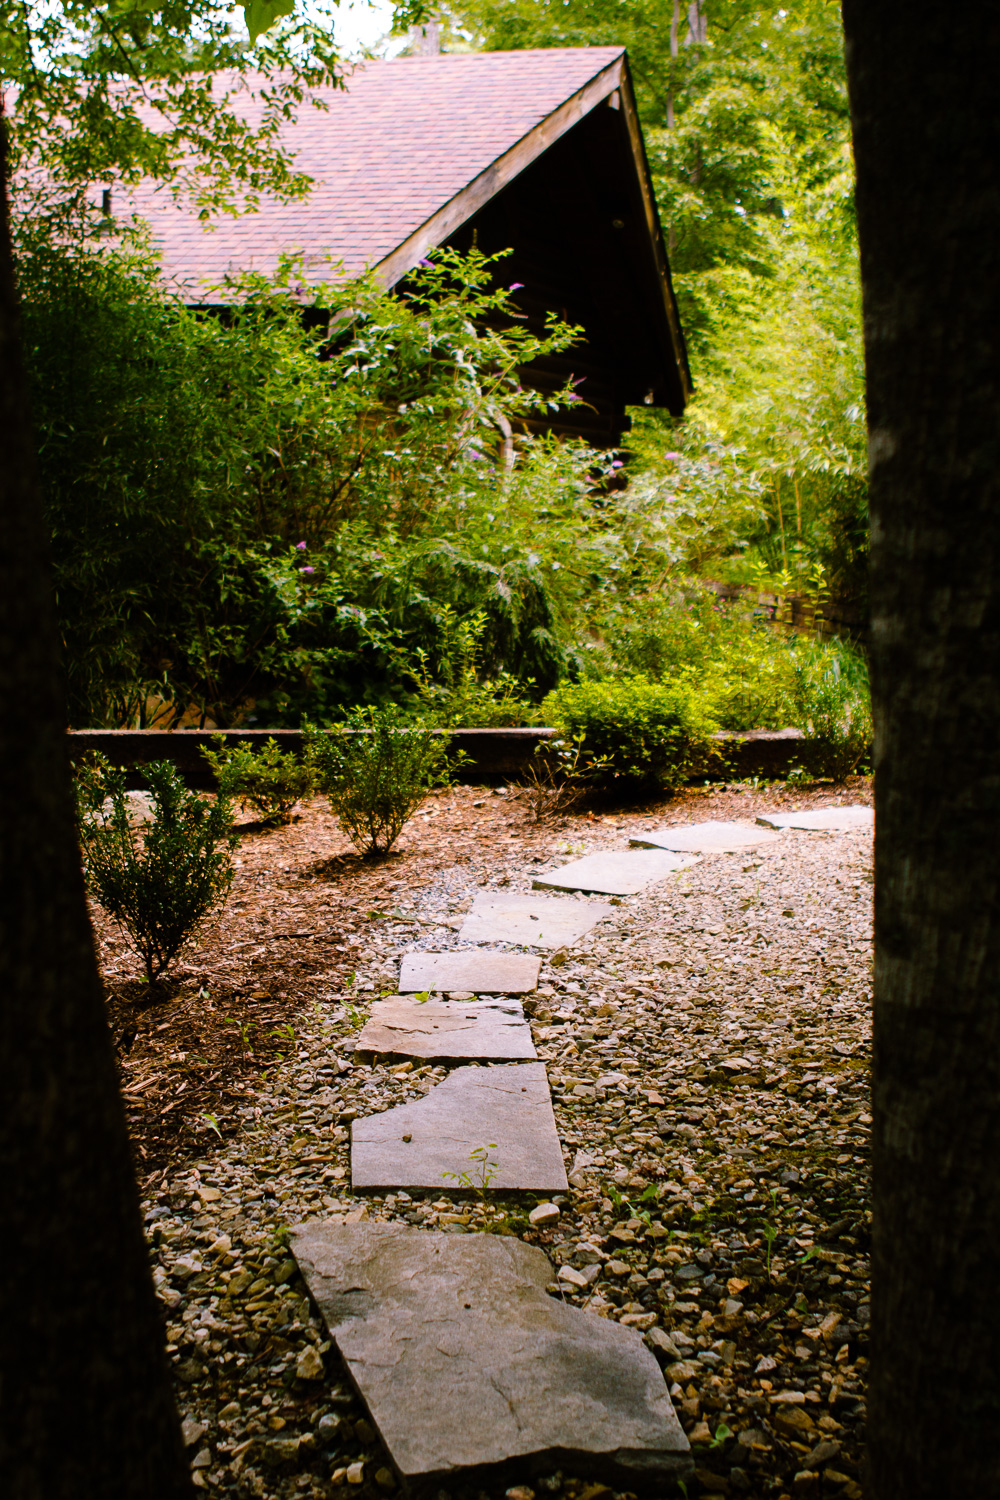 Stone path at Tao Mountain Sanctuary